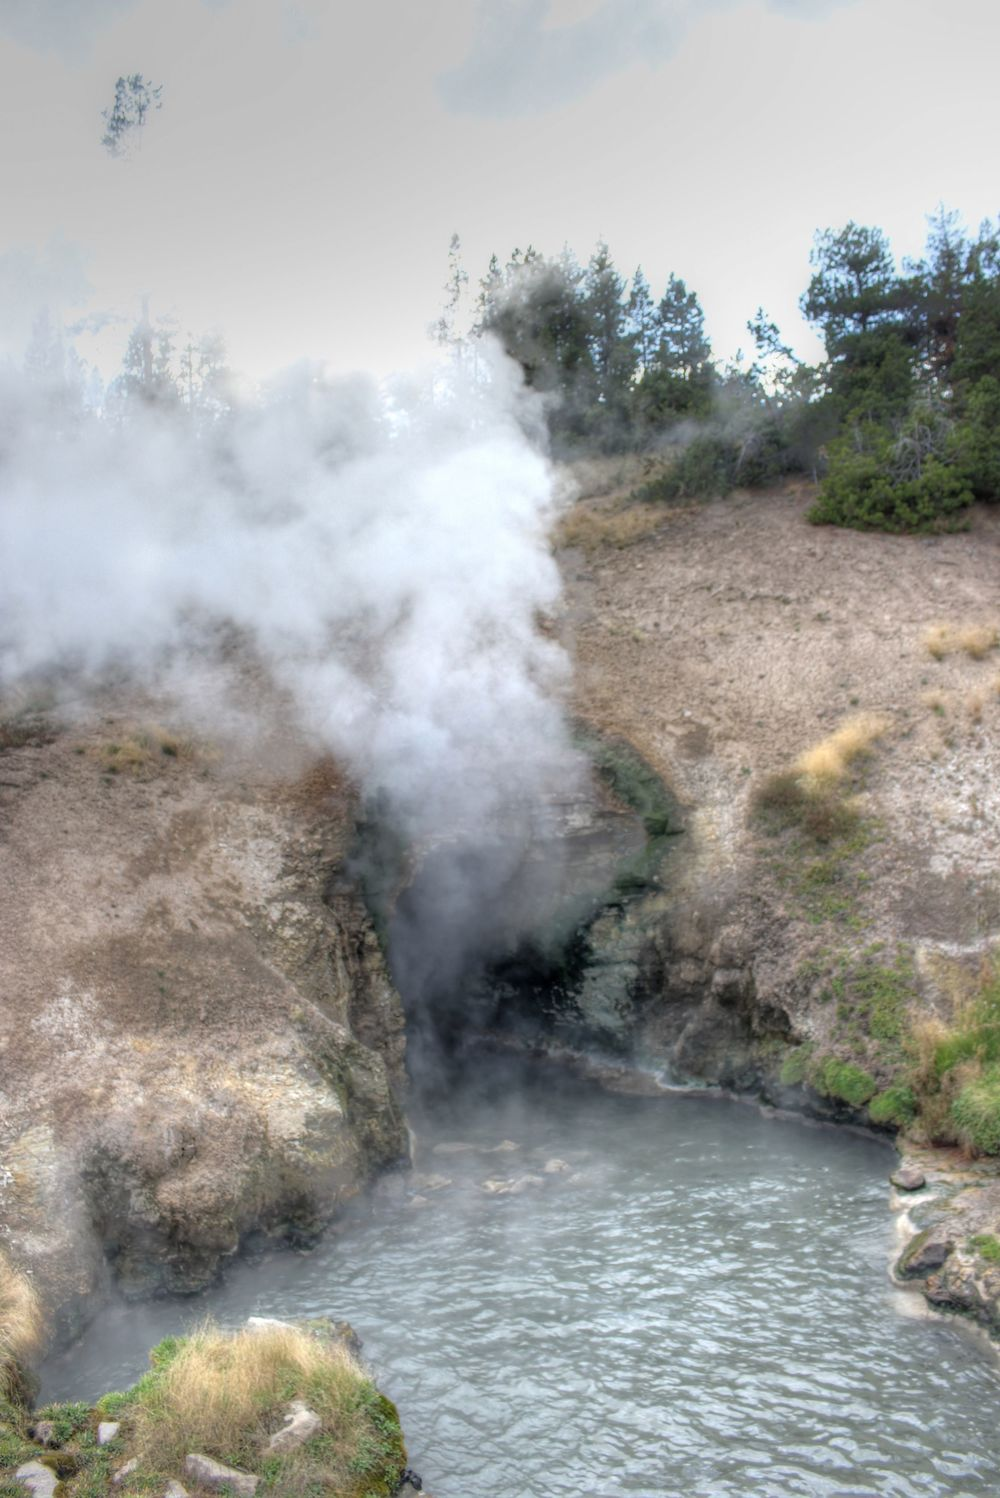 Dragon's Mouth Spring, Mud Volcano, Yellowstone National Park, WY, USA